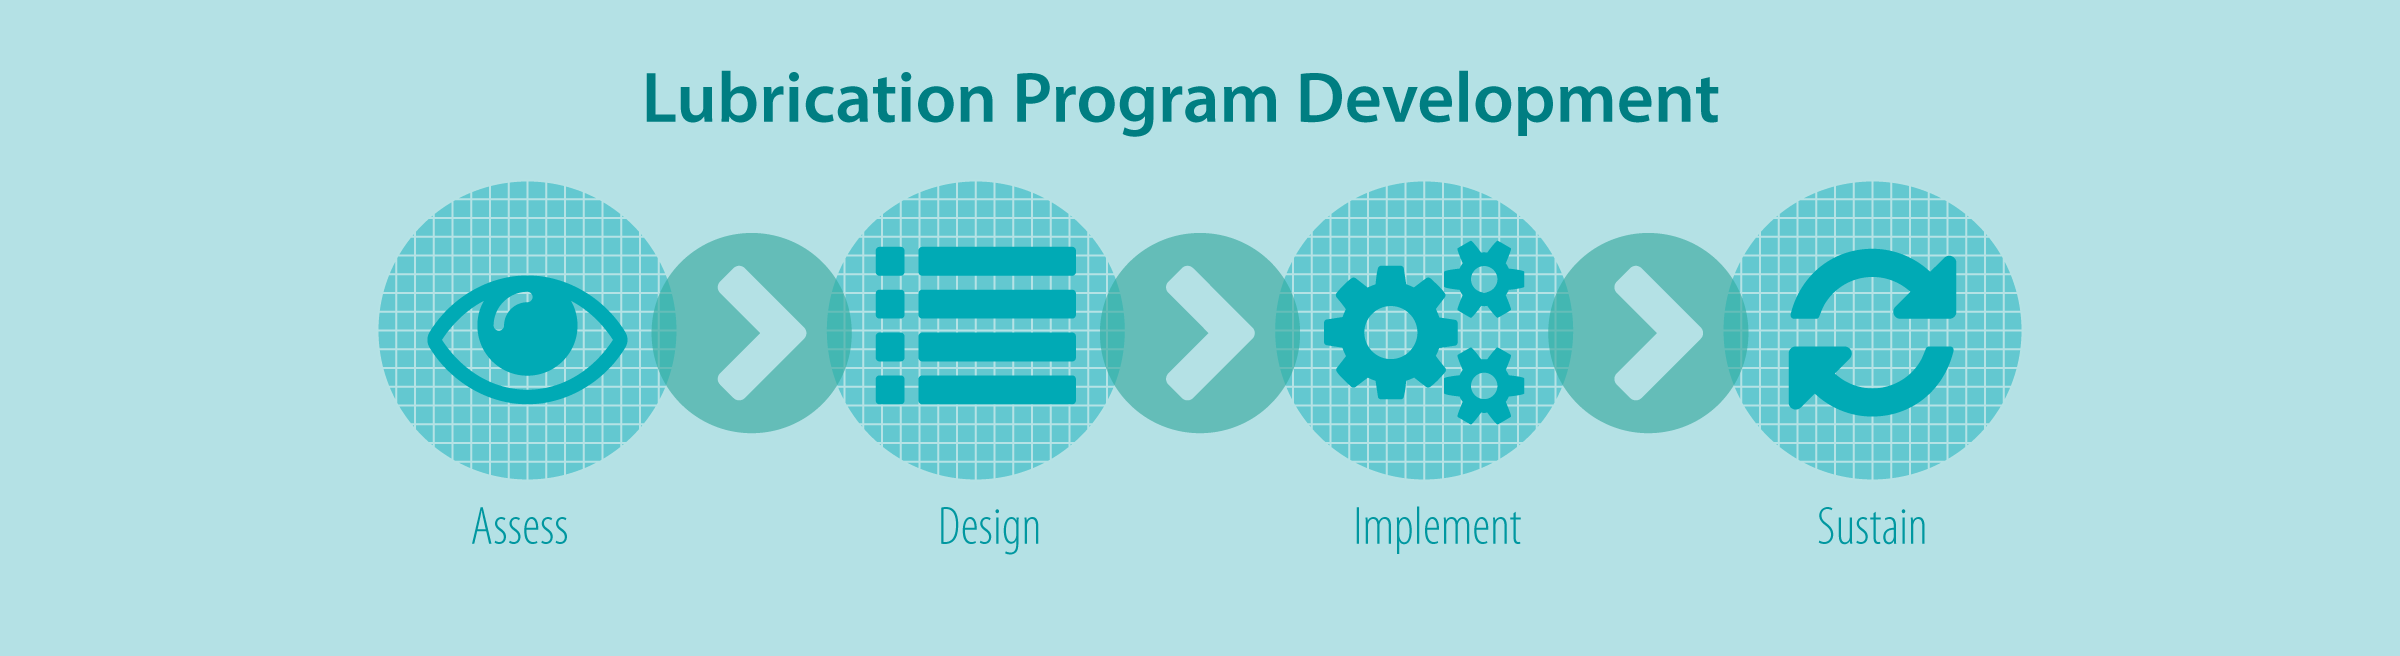 Lubrication Program Development